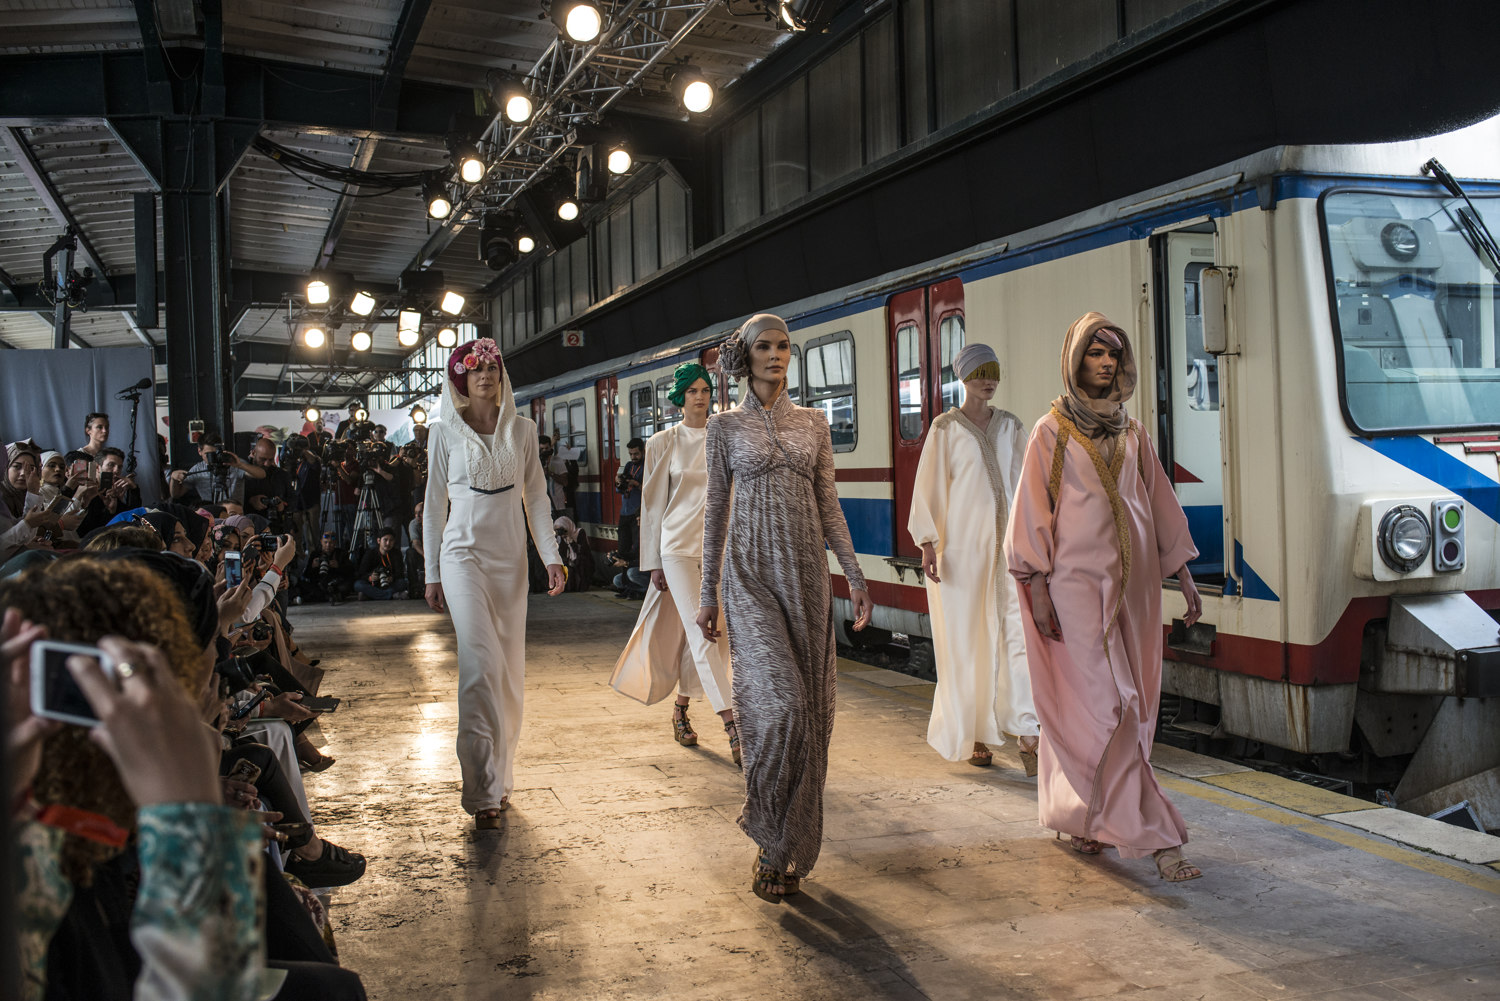 Images from the first day of Modanisa's Istanbul Modest Fashion Week which takes place at Haydarpasa train station in Istanbul, Turkey on May 13th, 2016.